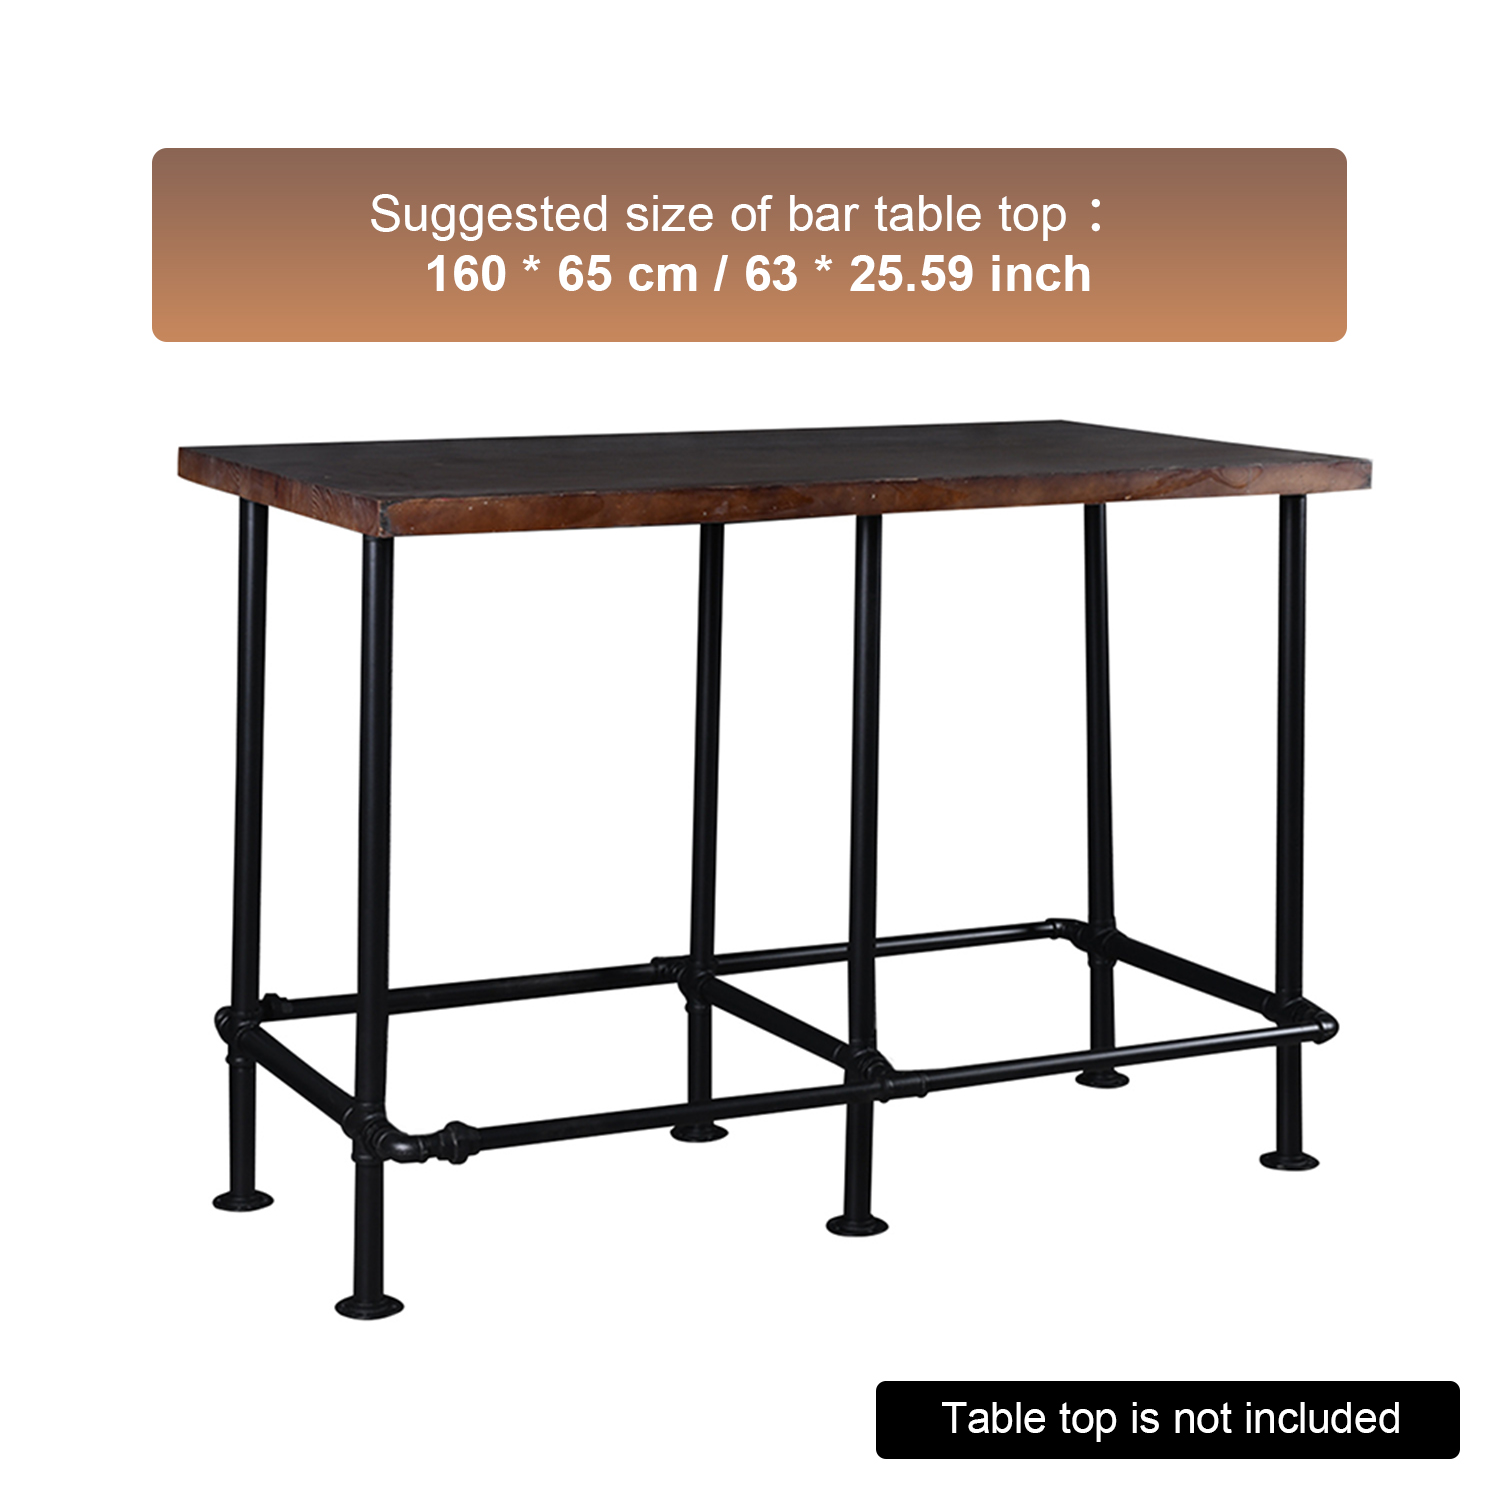 Picture of: Heavy Duty Industrial Retro Kit For Bar Table Rustic Kitchen Metal Frame Sturdy Vintage Style Table Base For Home Office Furniture Table Top Is Not Included Walmart Com Walmart Com